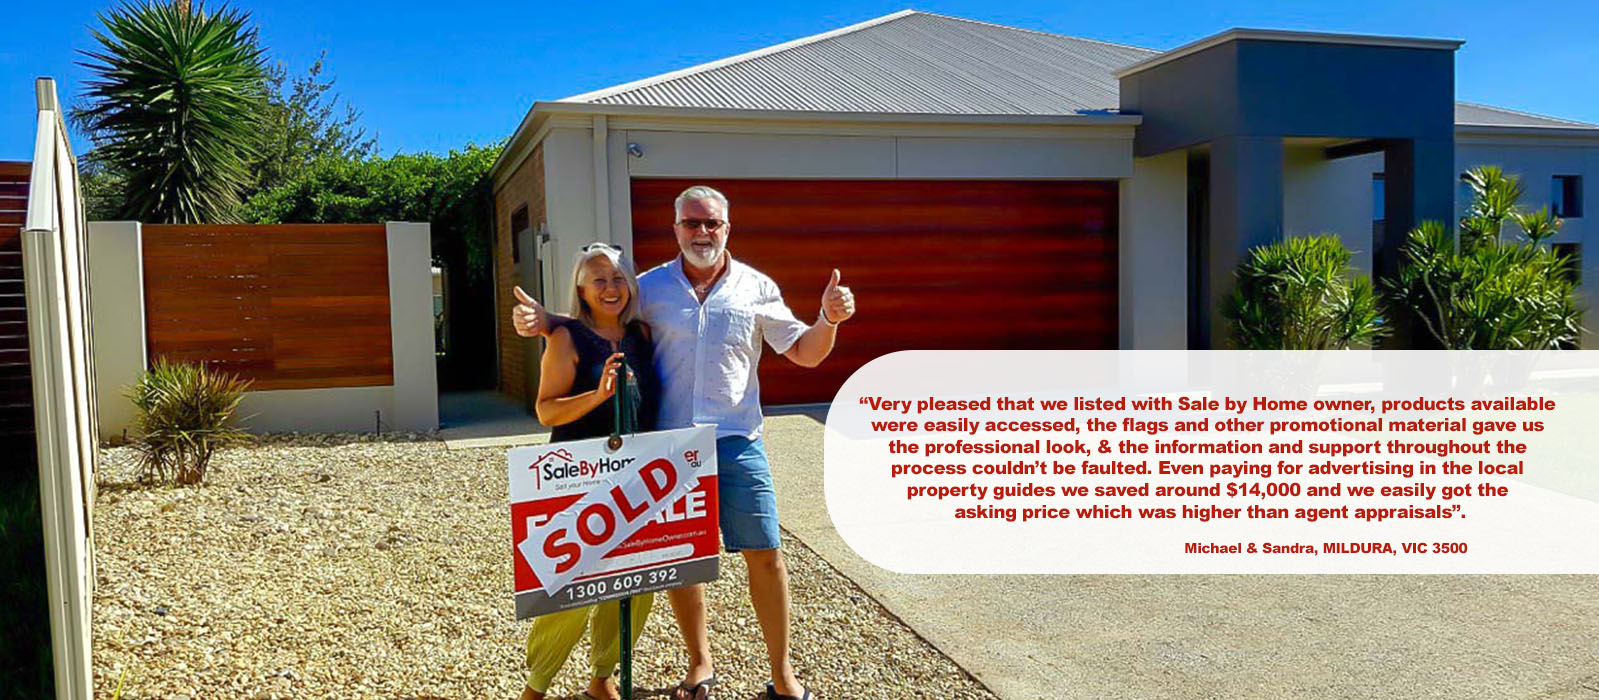 No Agent Property sales Australia